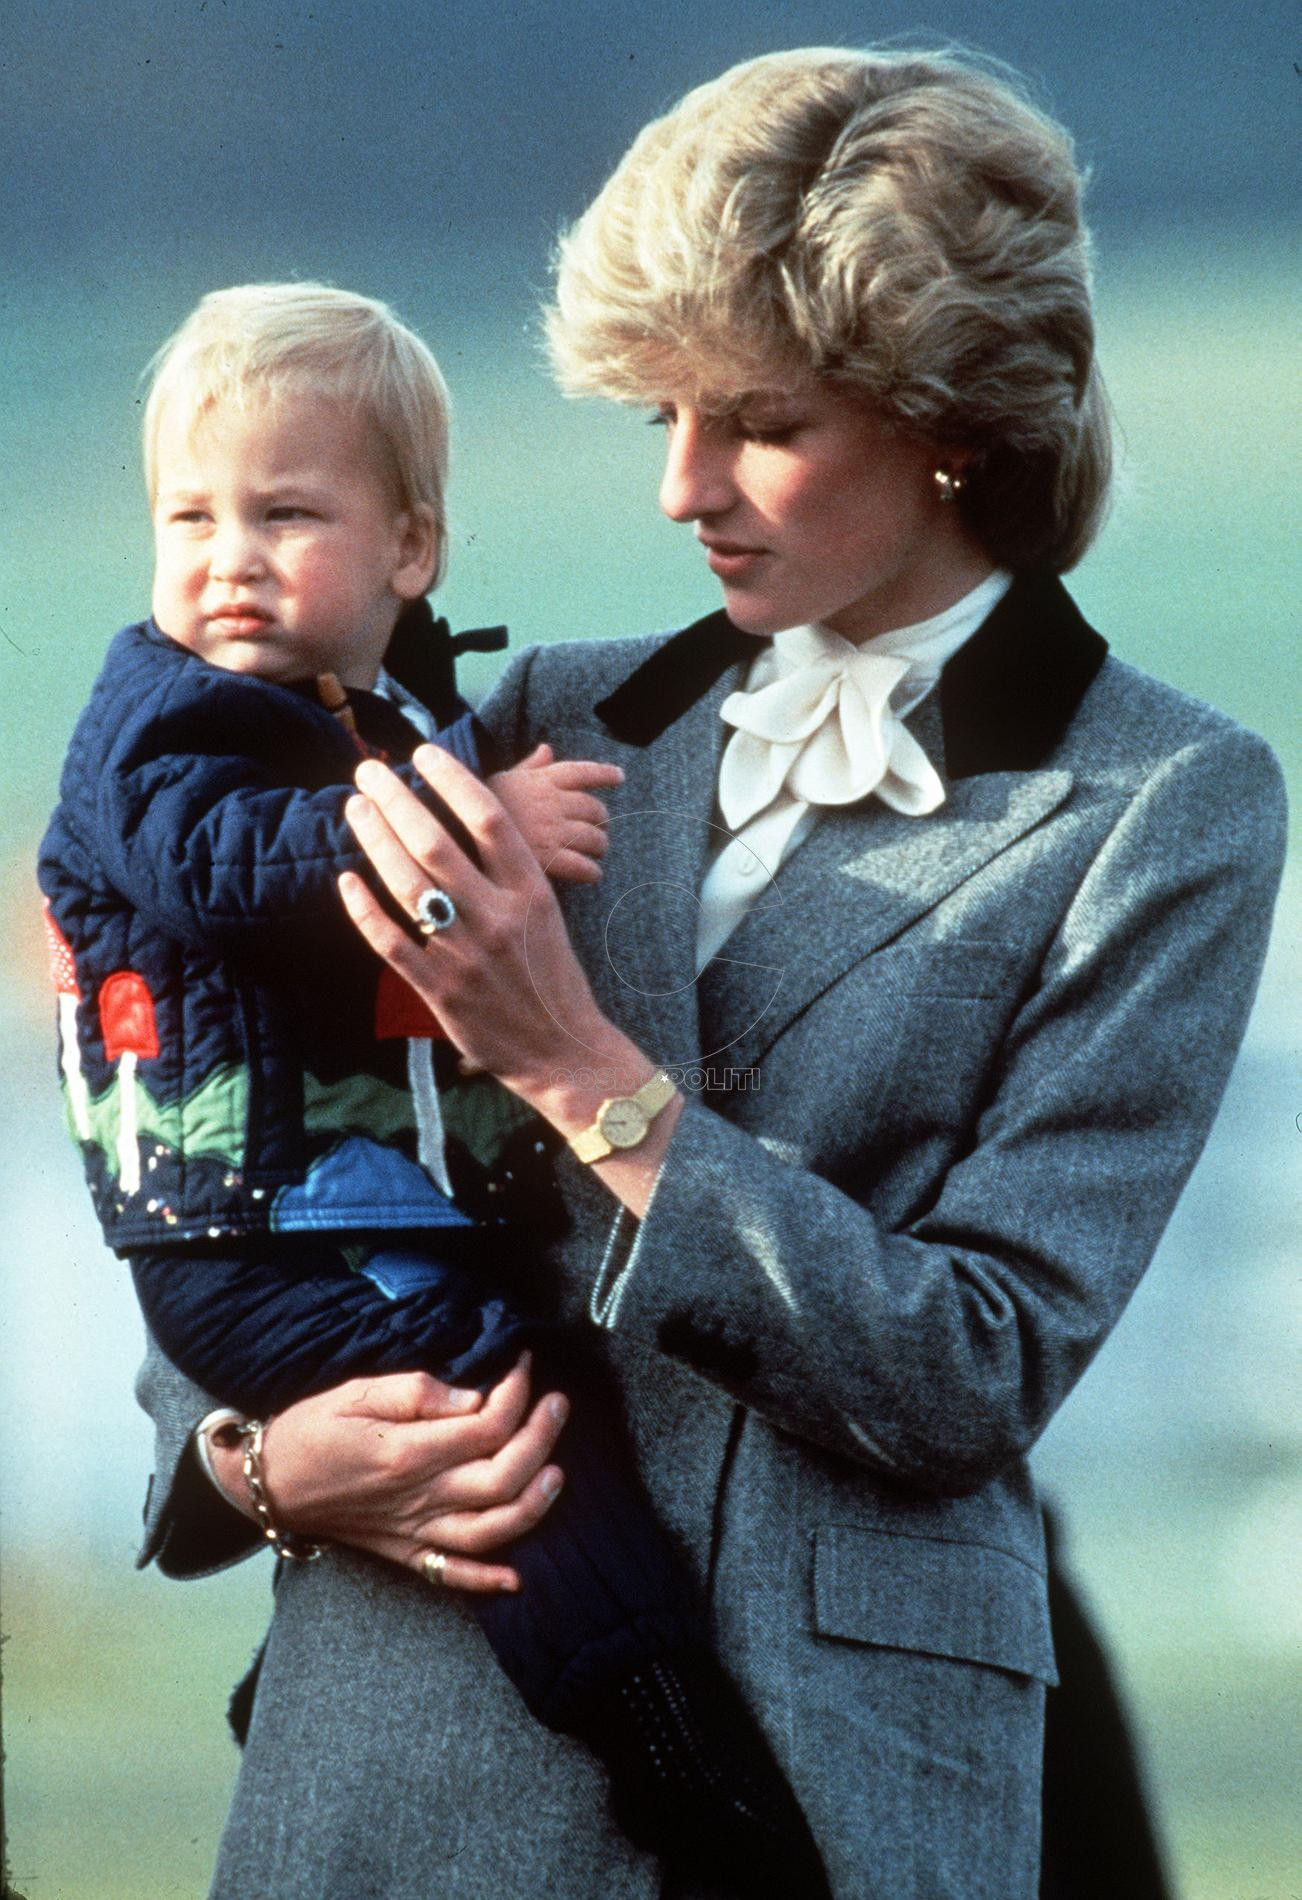 les-plus-beaux-hommages-des-princes-harry-et-william-a-lady-diana-photo-3